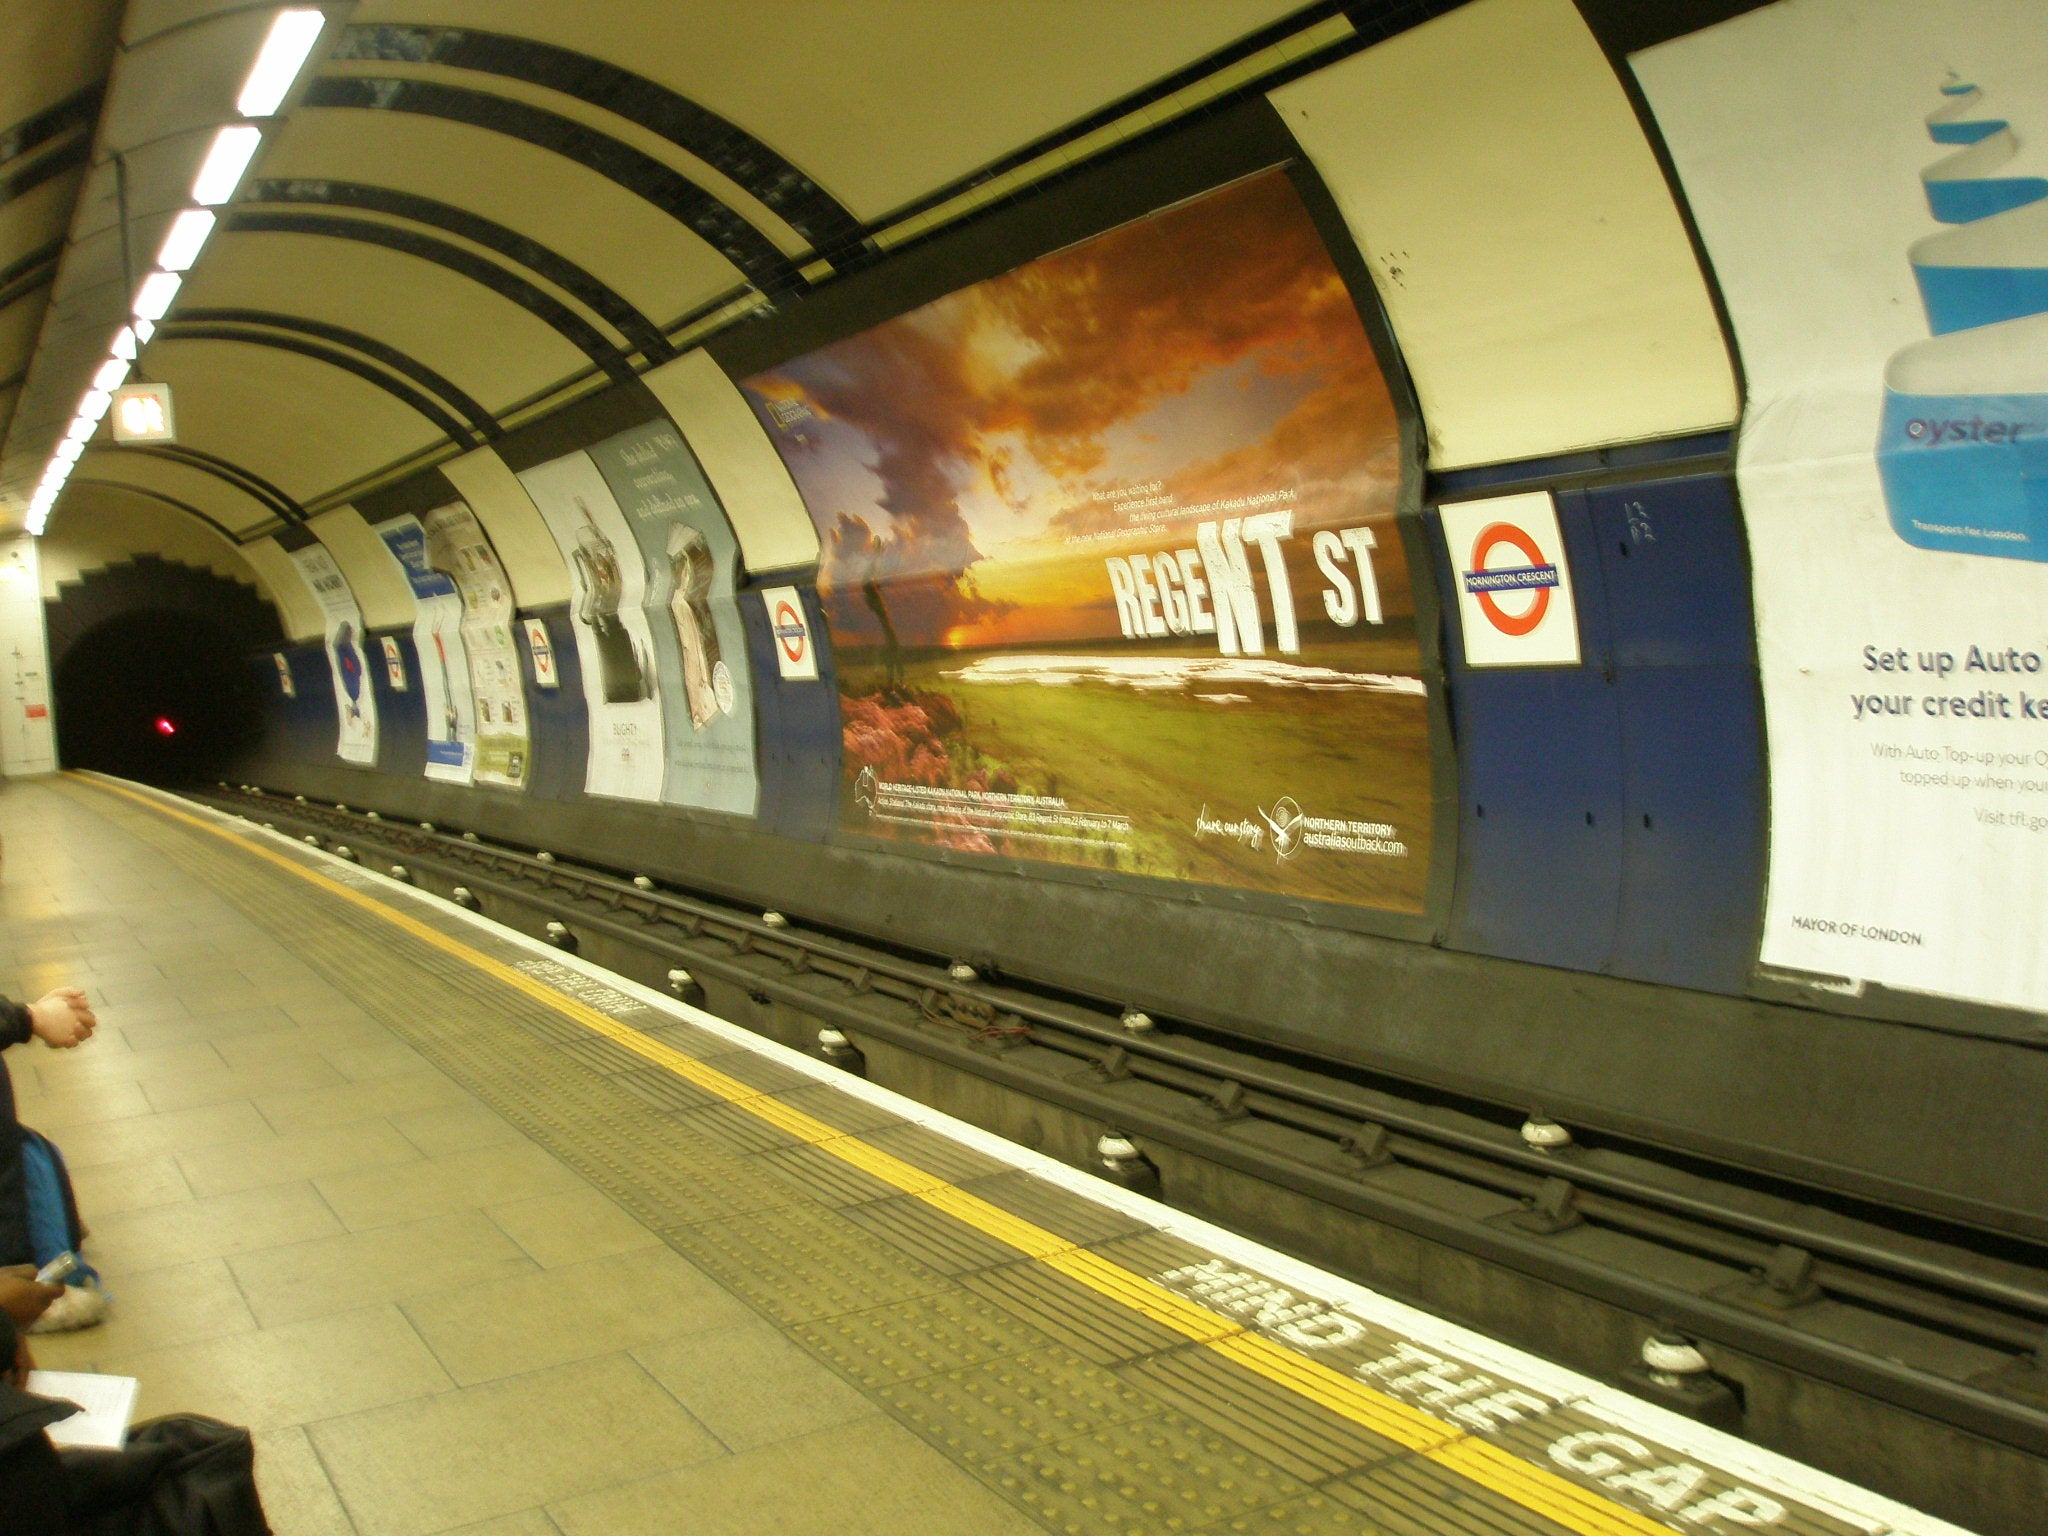 Estación de tren en London Tube